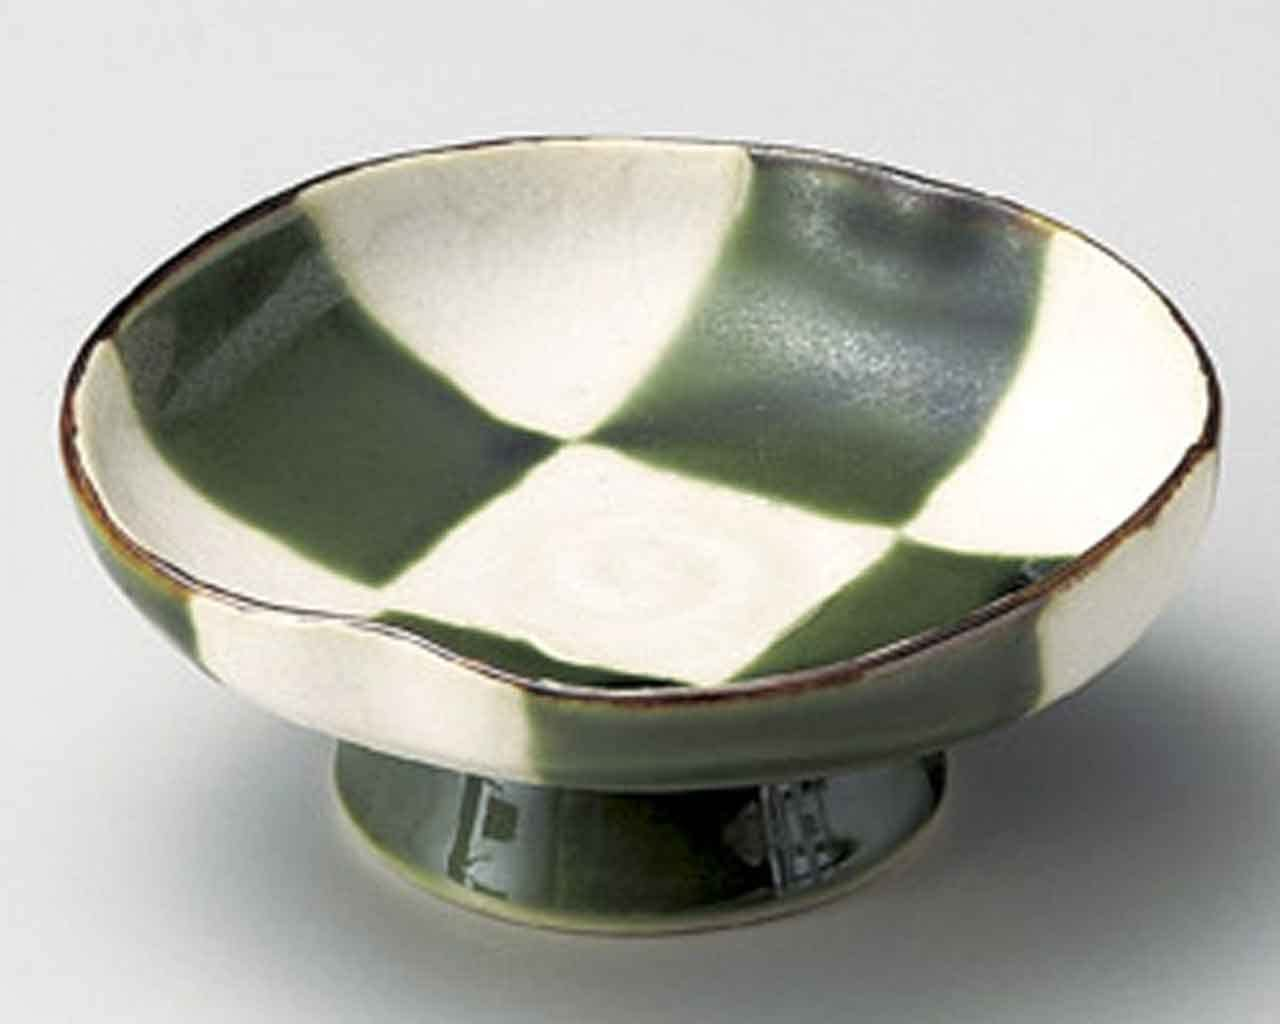 Oribe free shipping Kohshi 4.6inch Set of 5 Bowls Green Made i porcelain Max 53% OFF Small